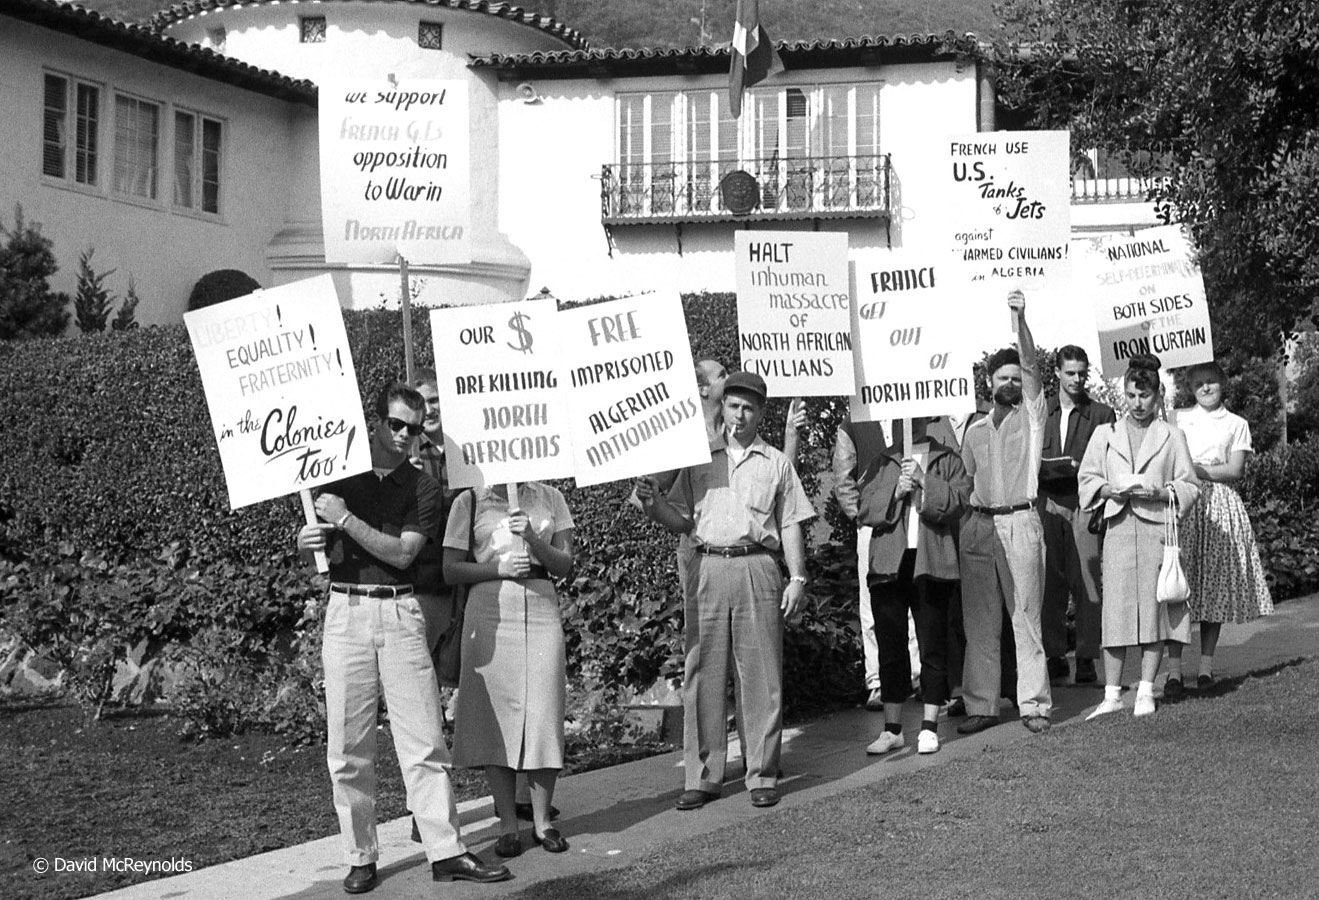 Marching to the French Embassy in Los Angeles, November 1955. (55-26)